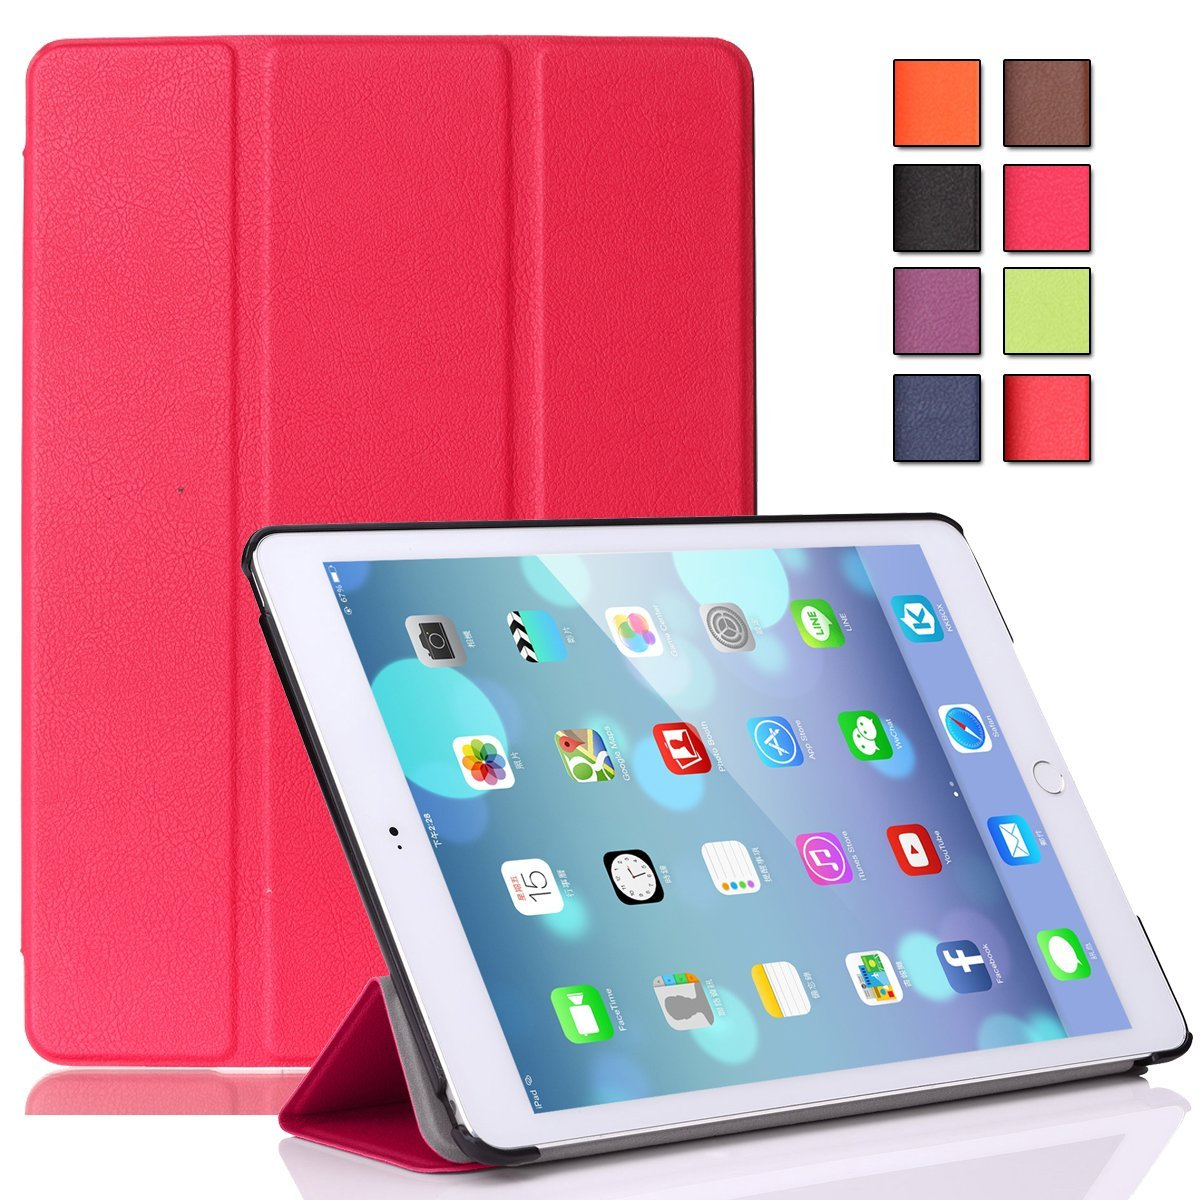 iPad Air 2 Case,iPad 6 Case - Pasonomi® Ultra Slim Lightweight Smart Shell Cover Case for iPad Air 2 Tablet (With Smart Cover Auto Wake/Sleep Feature) (Hot Pink)